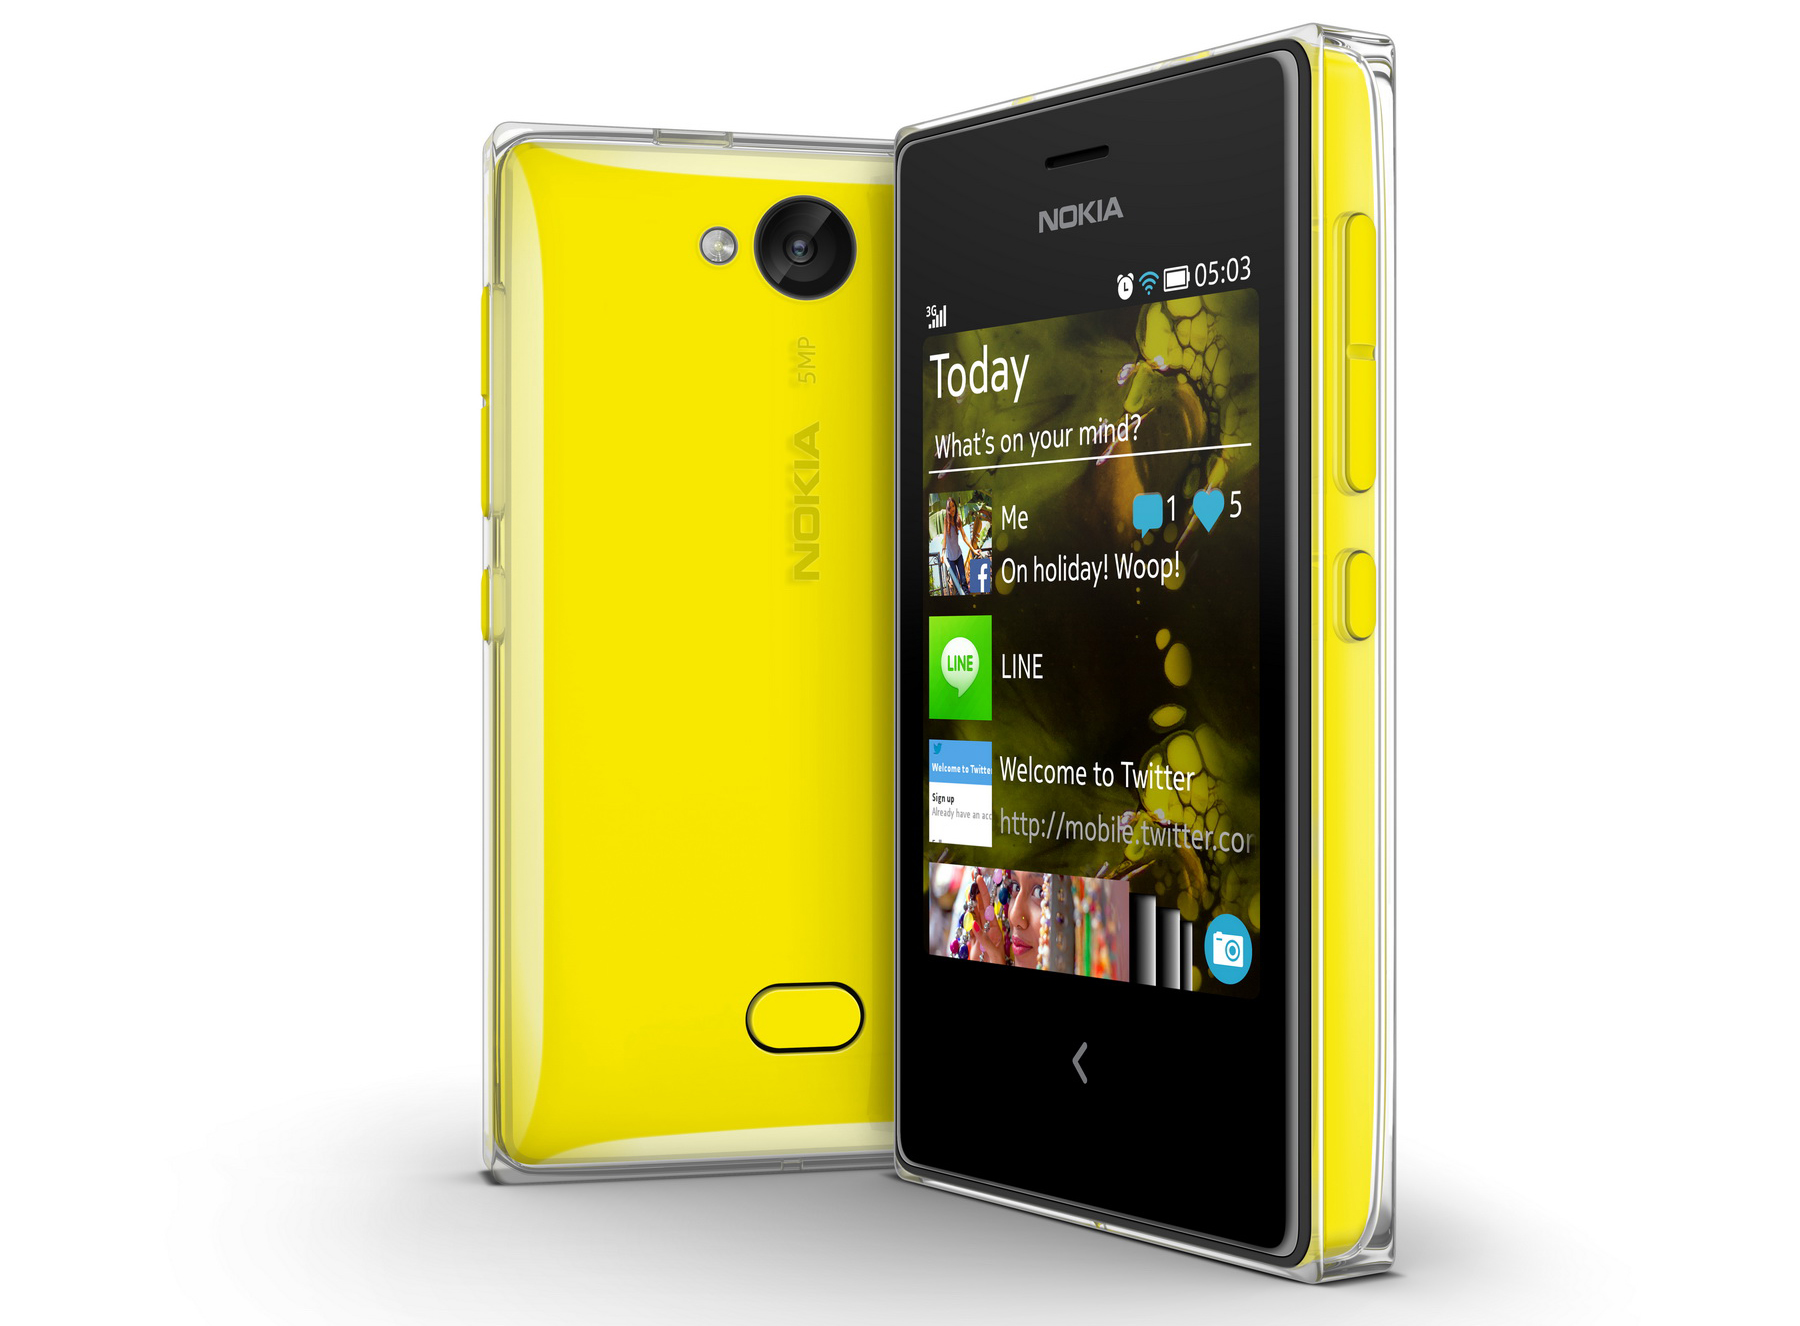 Nokia asha 503 review uk dating 1